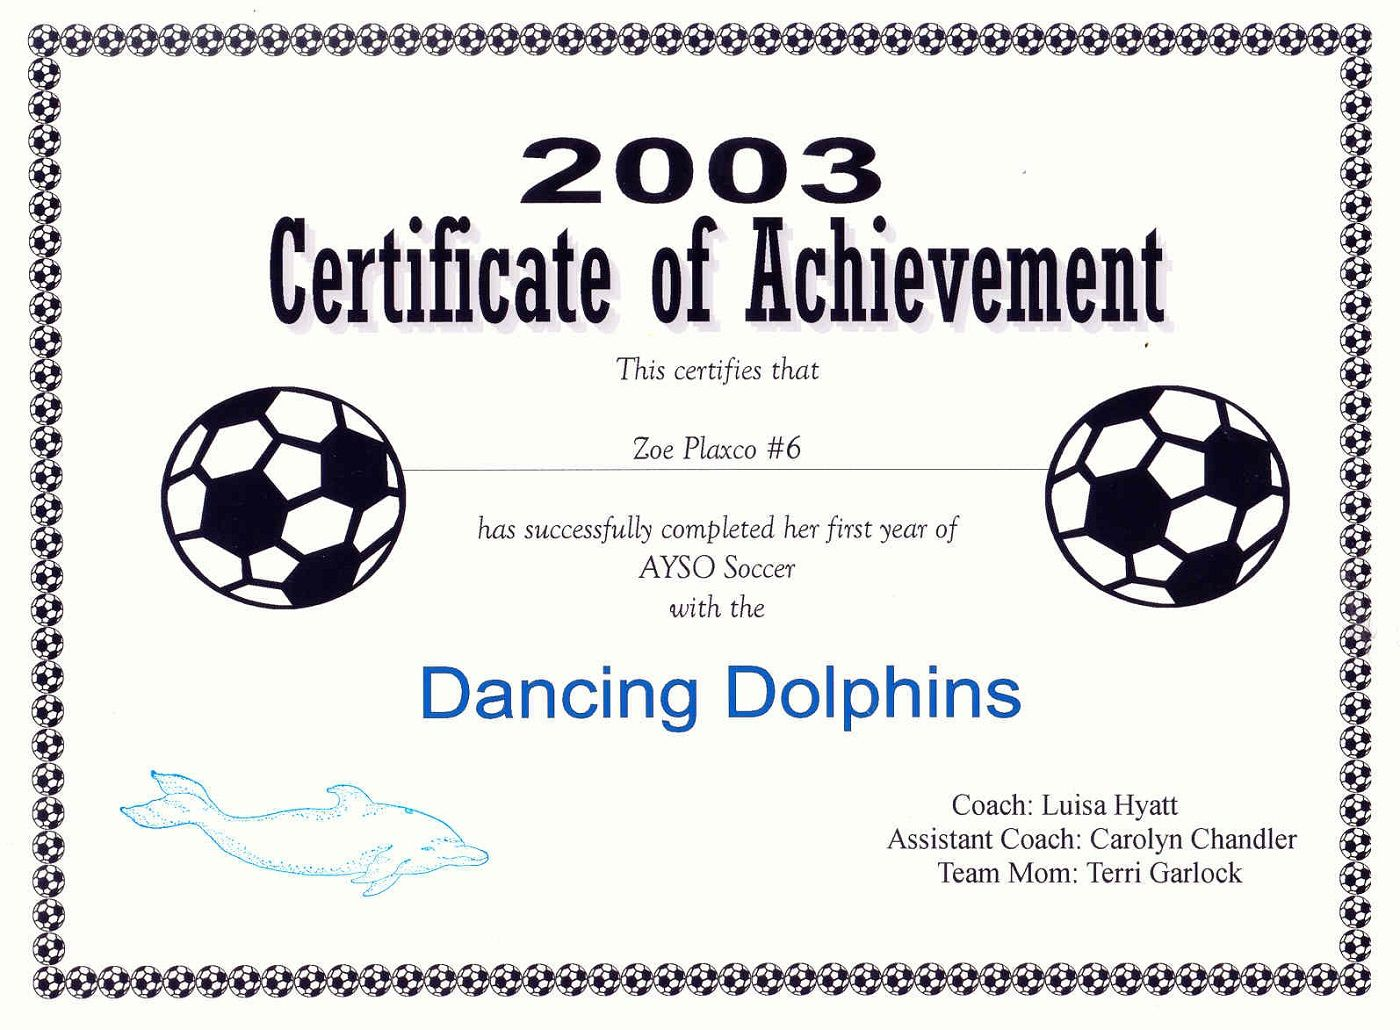 29 Images Of Blank Award Certificate Template Soccer With